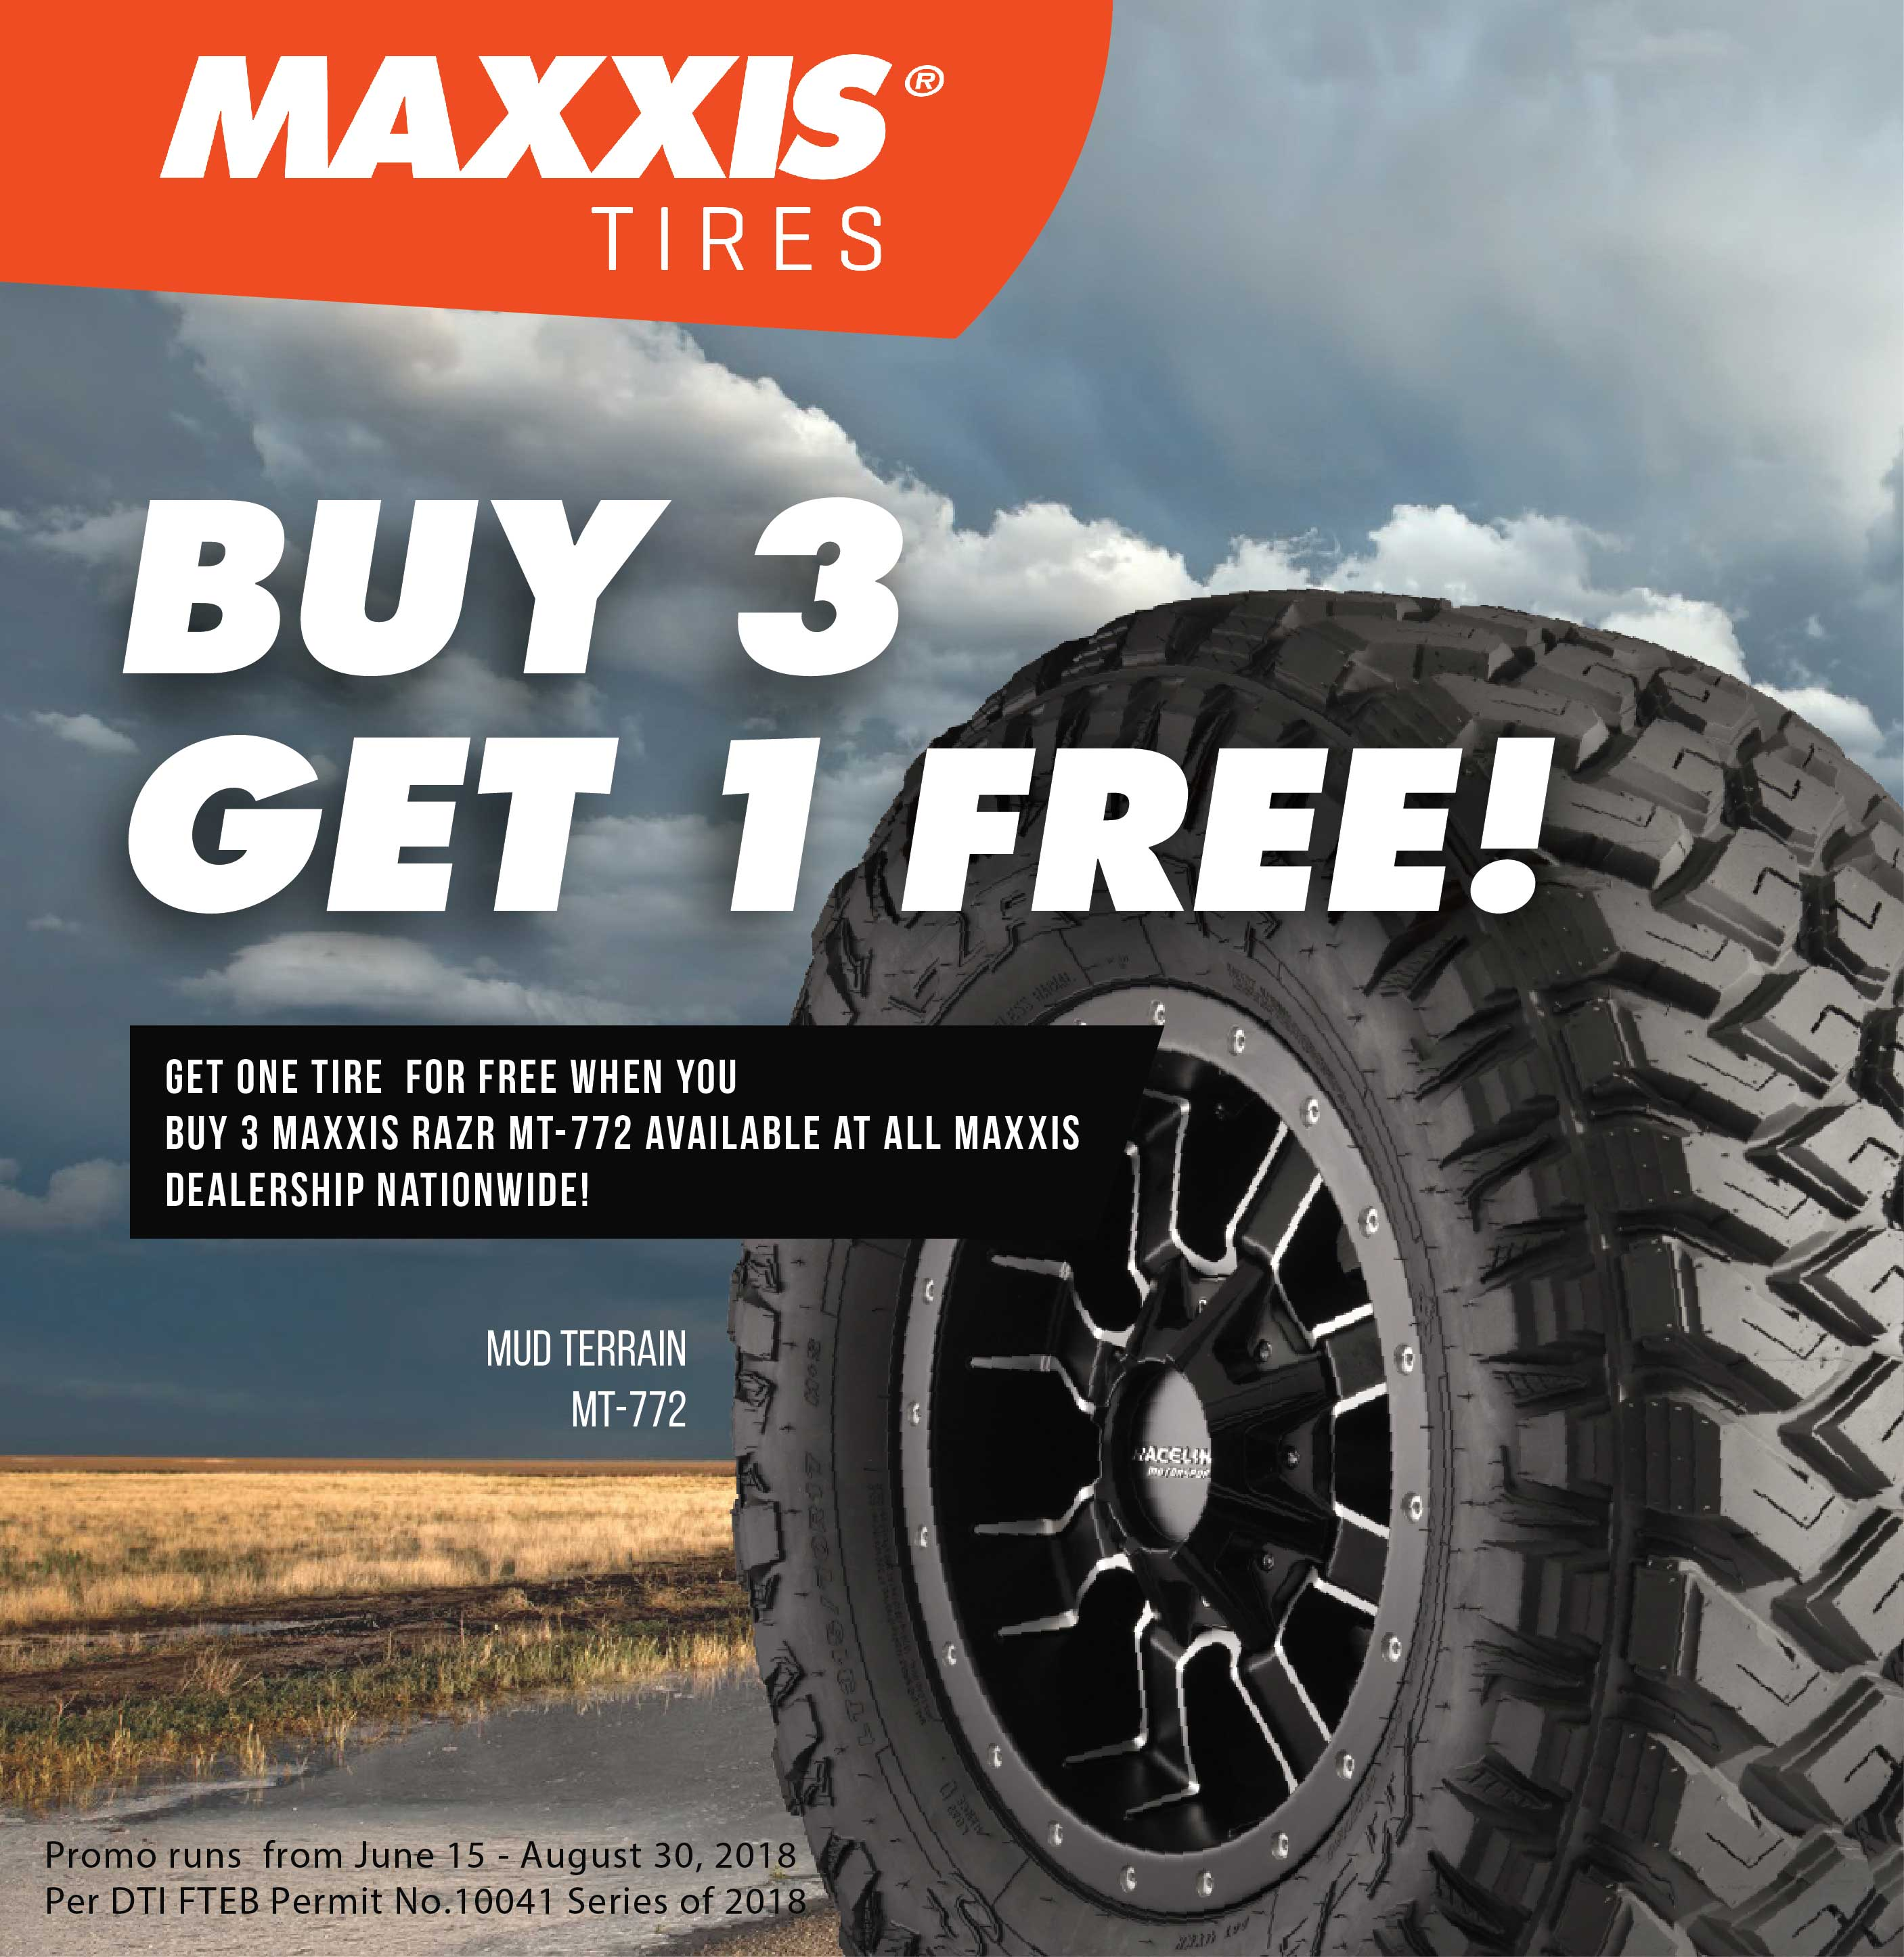 Maxis Buy 3 Get 1 Free MT-772